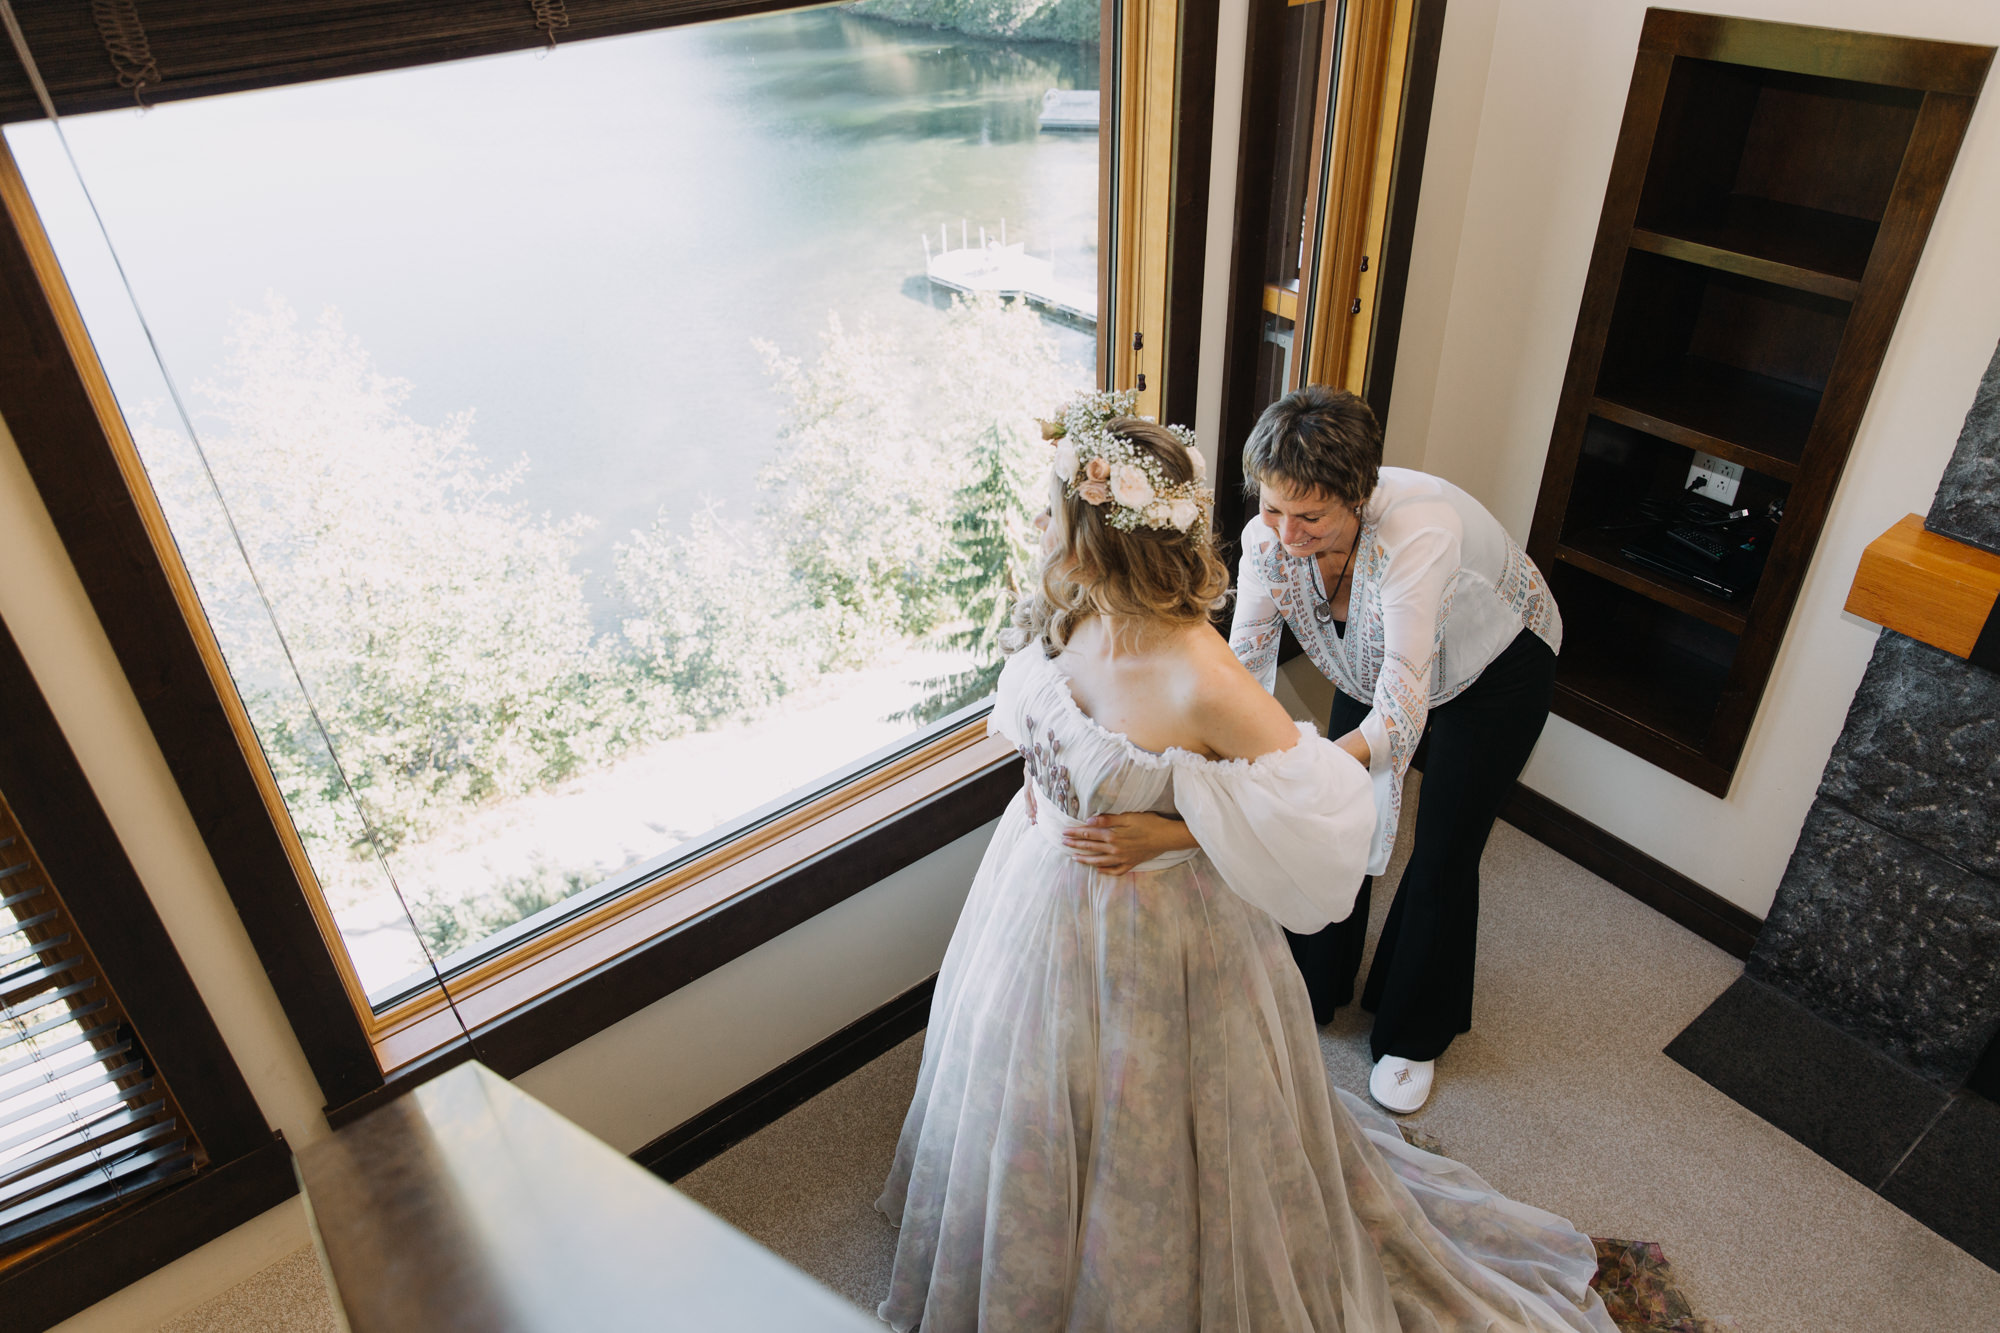 Bride putting her floral wedding dress Hilori by Rara Avis and her mother helping her